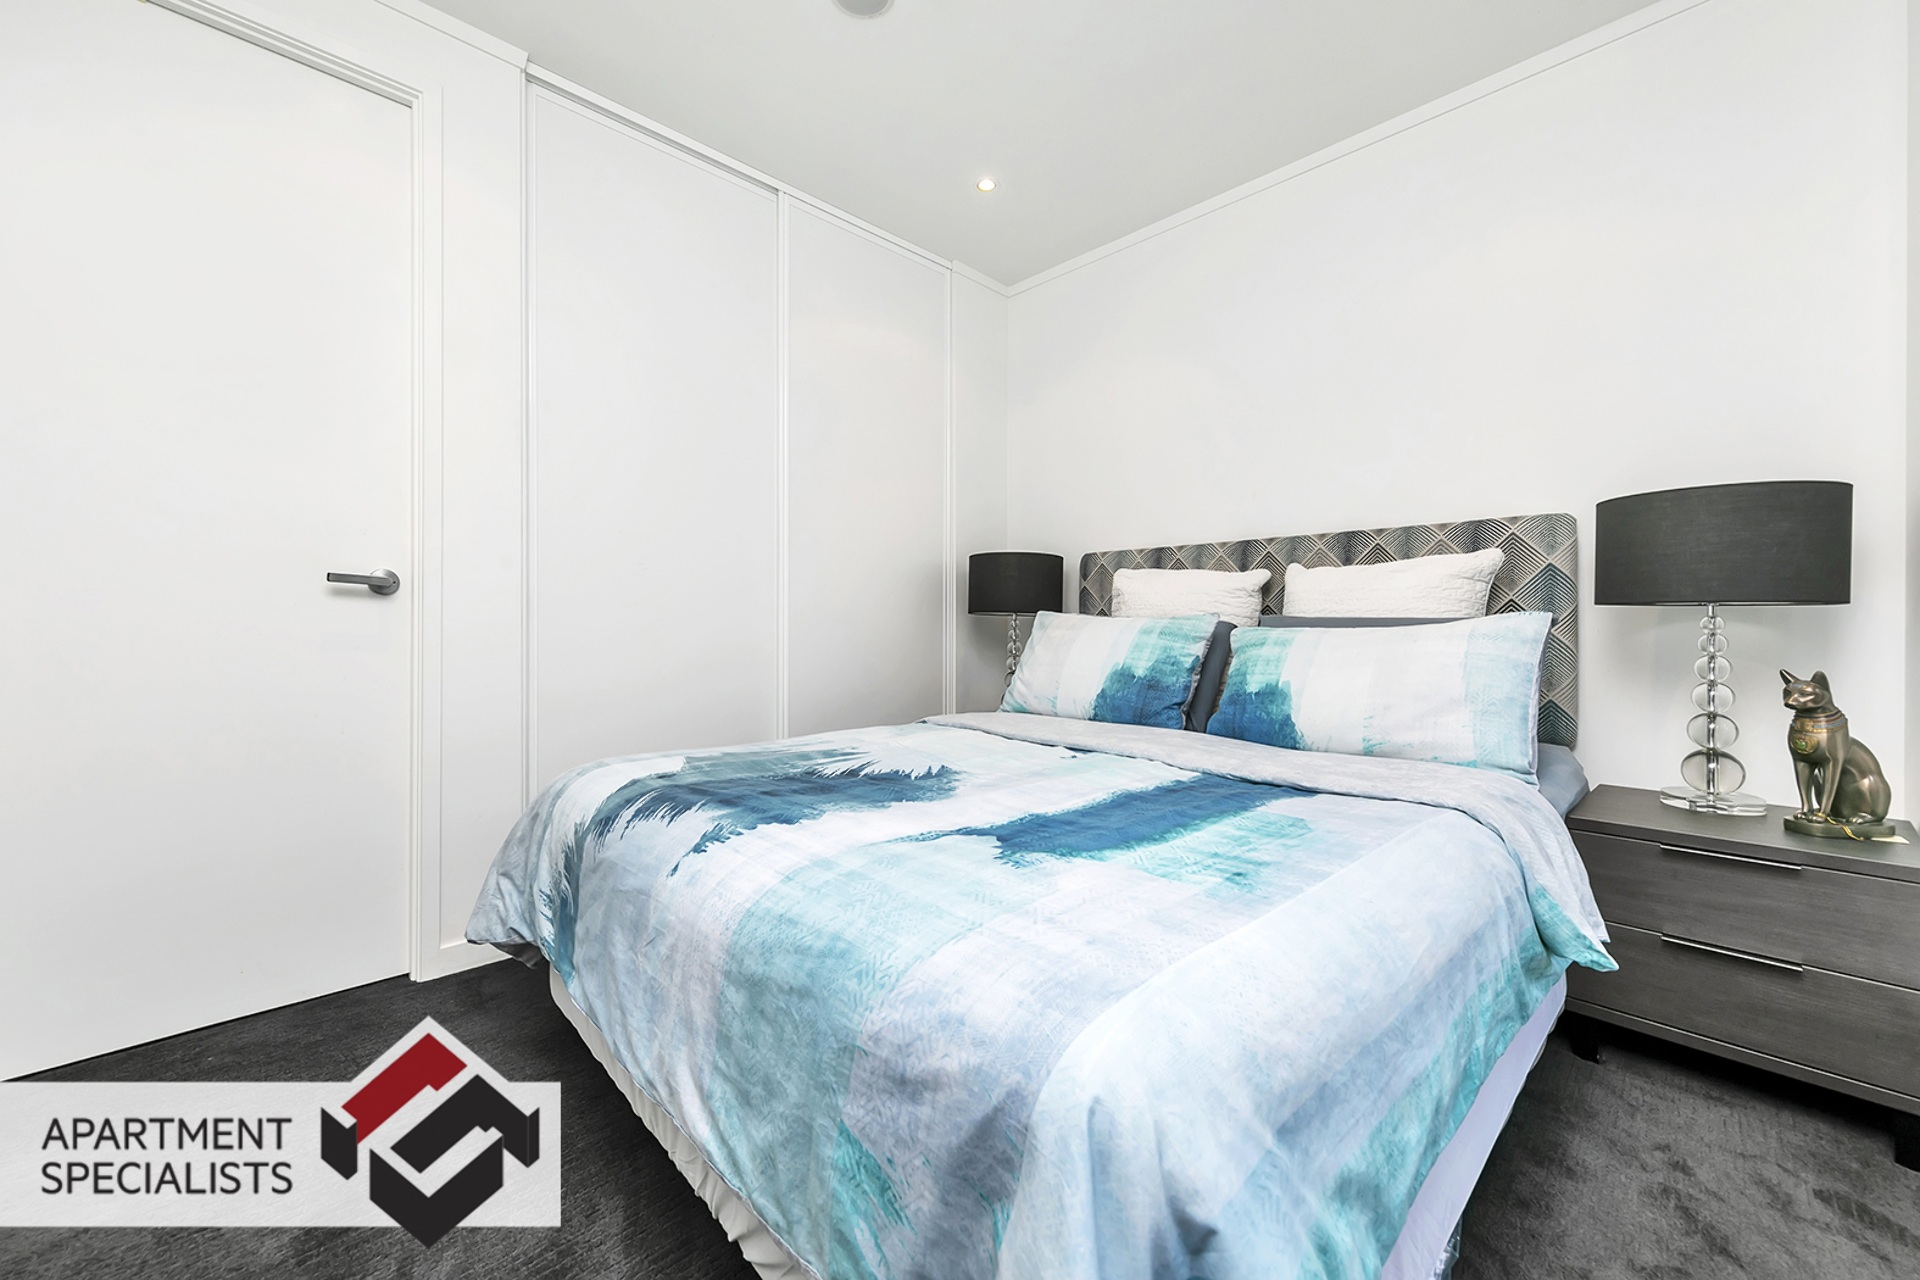 5 | 27 Union Street, City Centre | Apartment Specialists